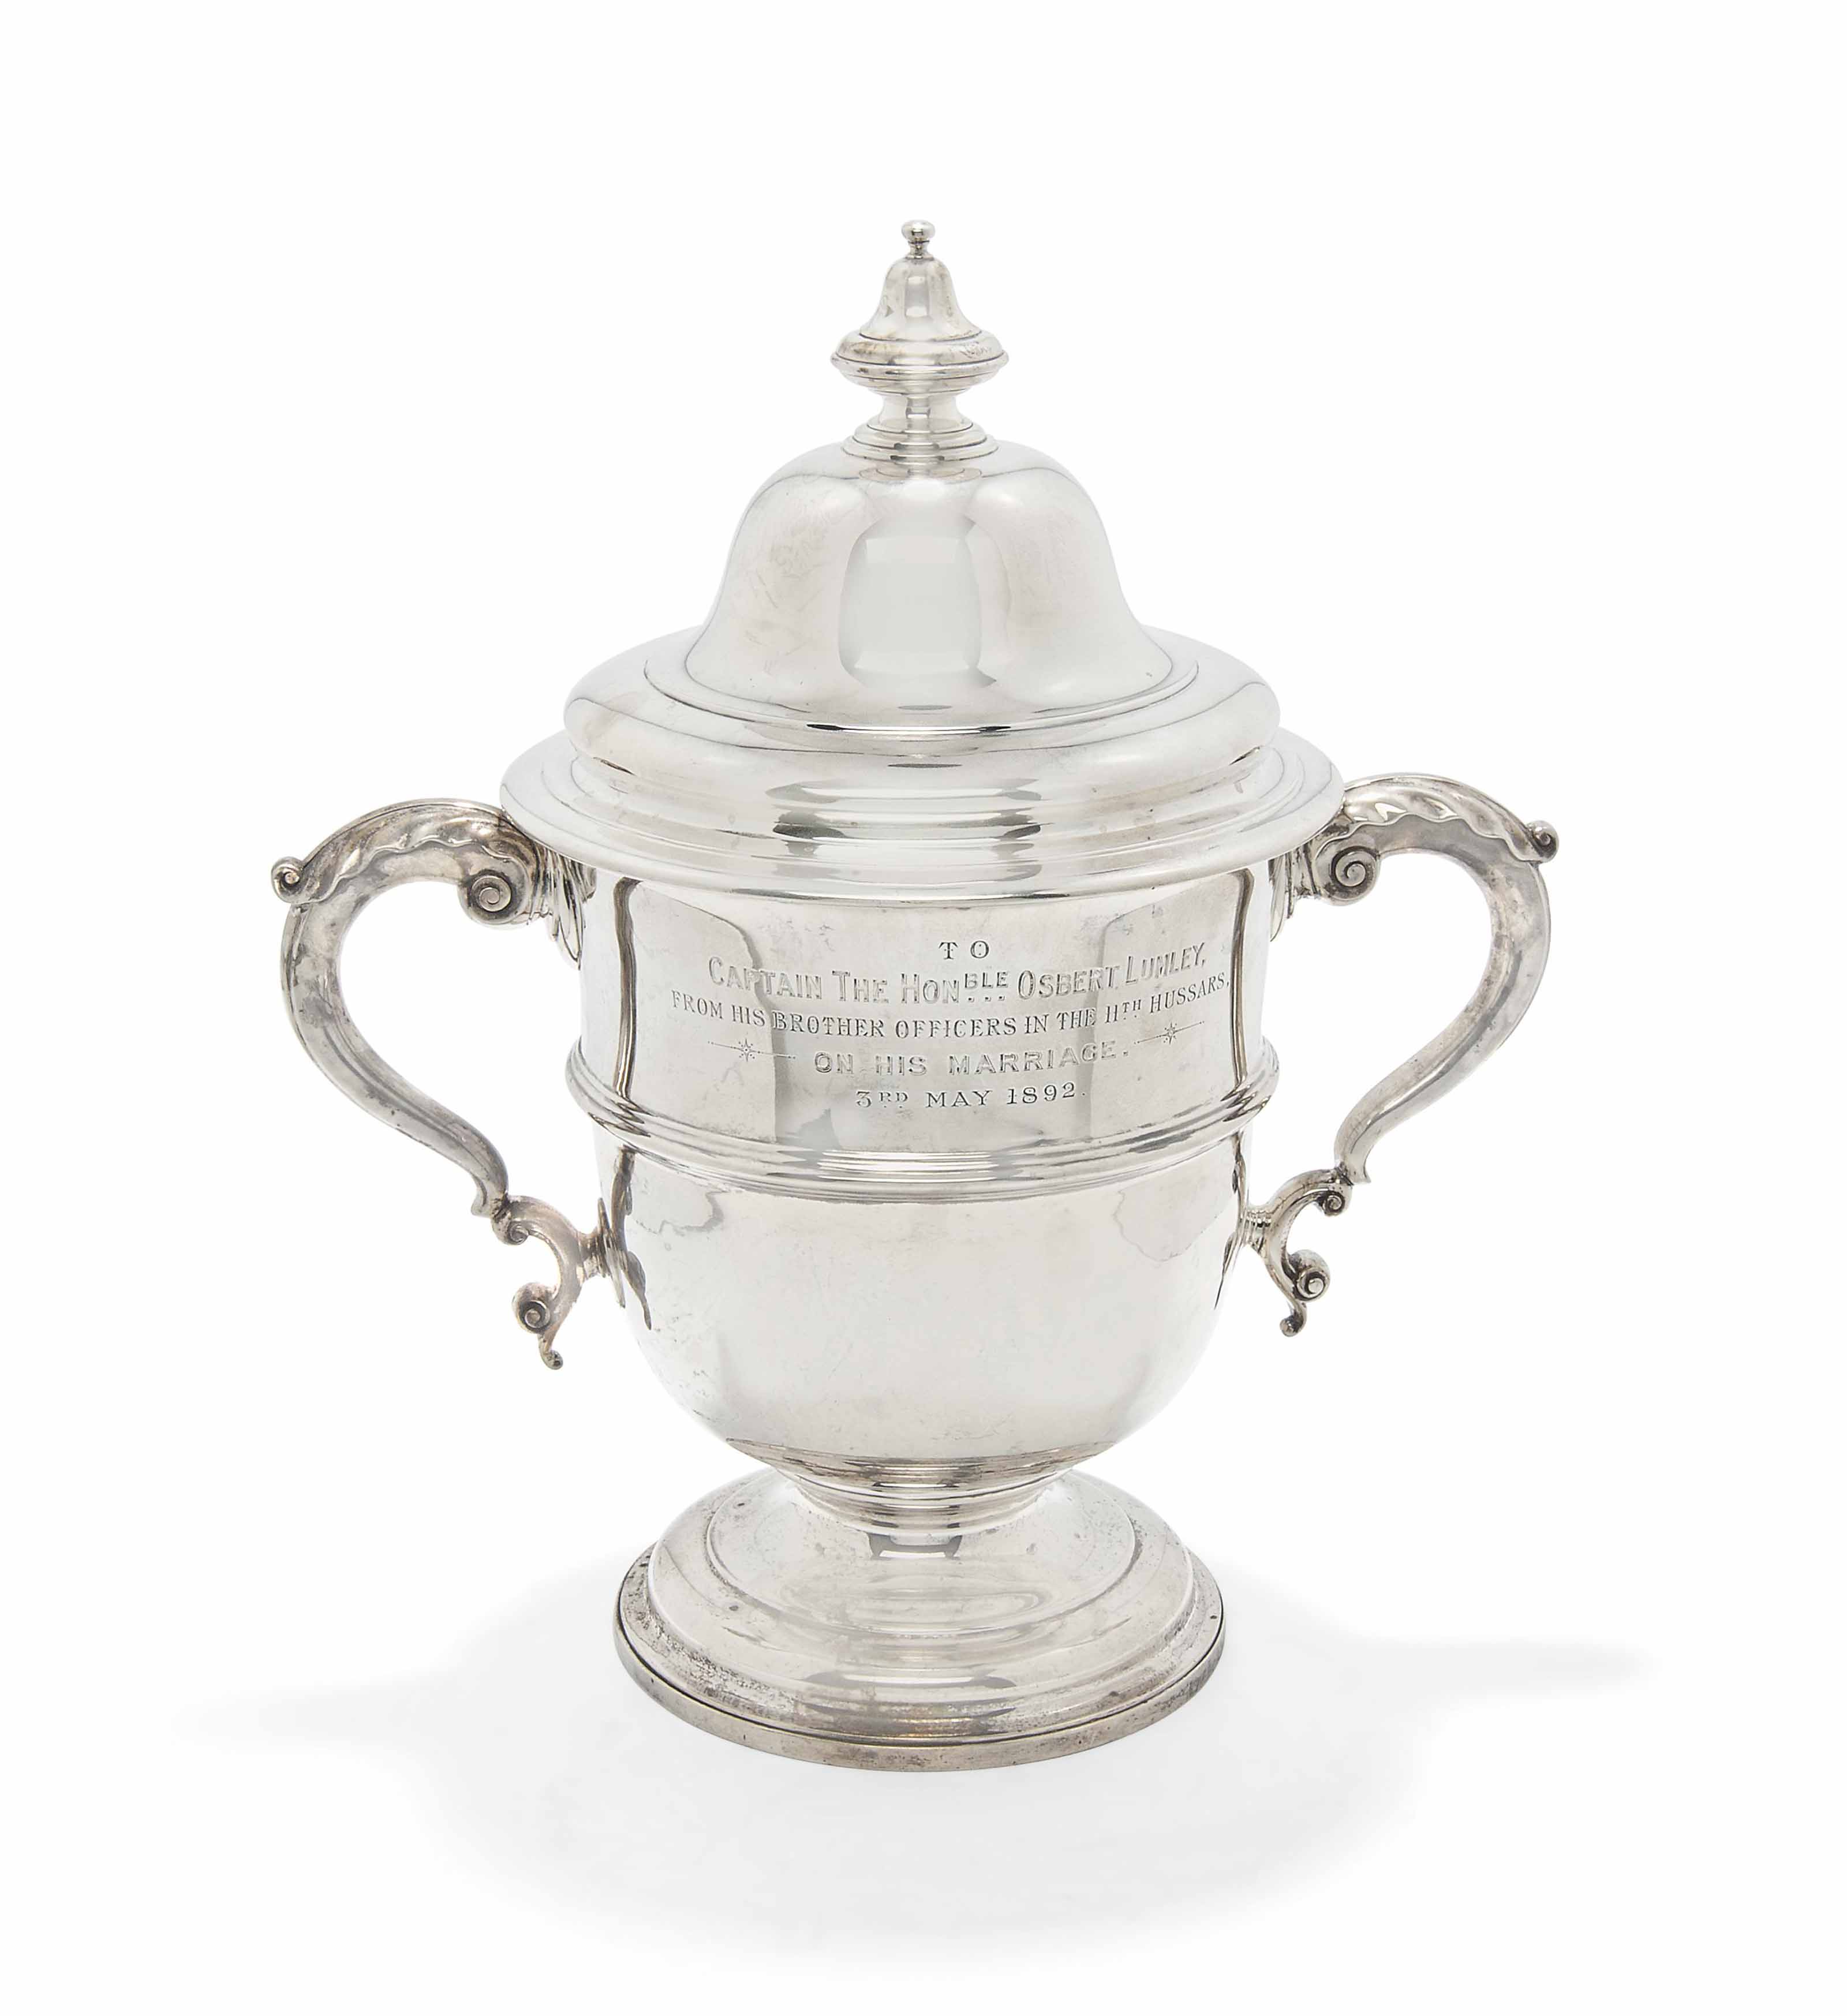 A LARGE VICTORIAN SILVER TROPHY CUP AND COVER OF GEORGIAN STYLE